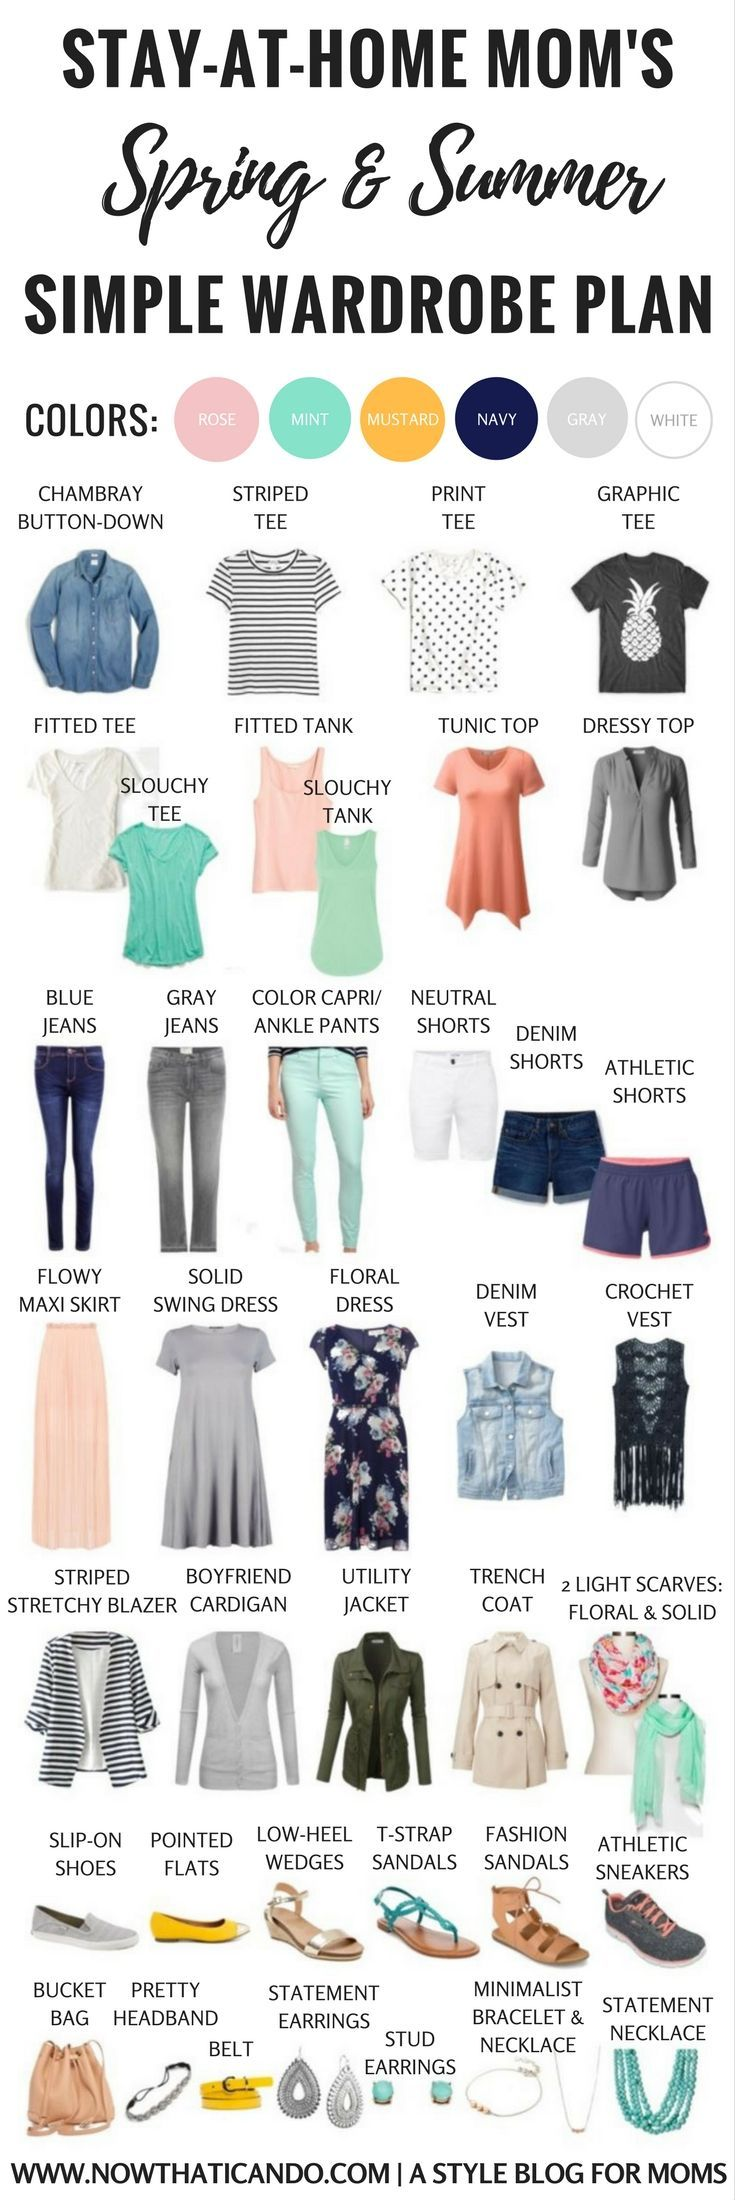 Basic Spring/Summer Capsule Wardrobe (86+ Outfits) for Stay-at-Home Moms - PLUS 3